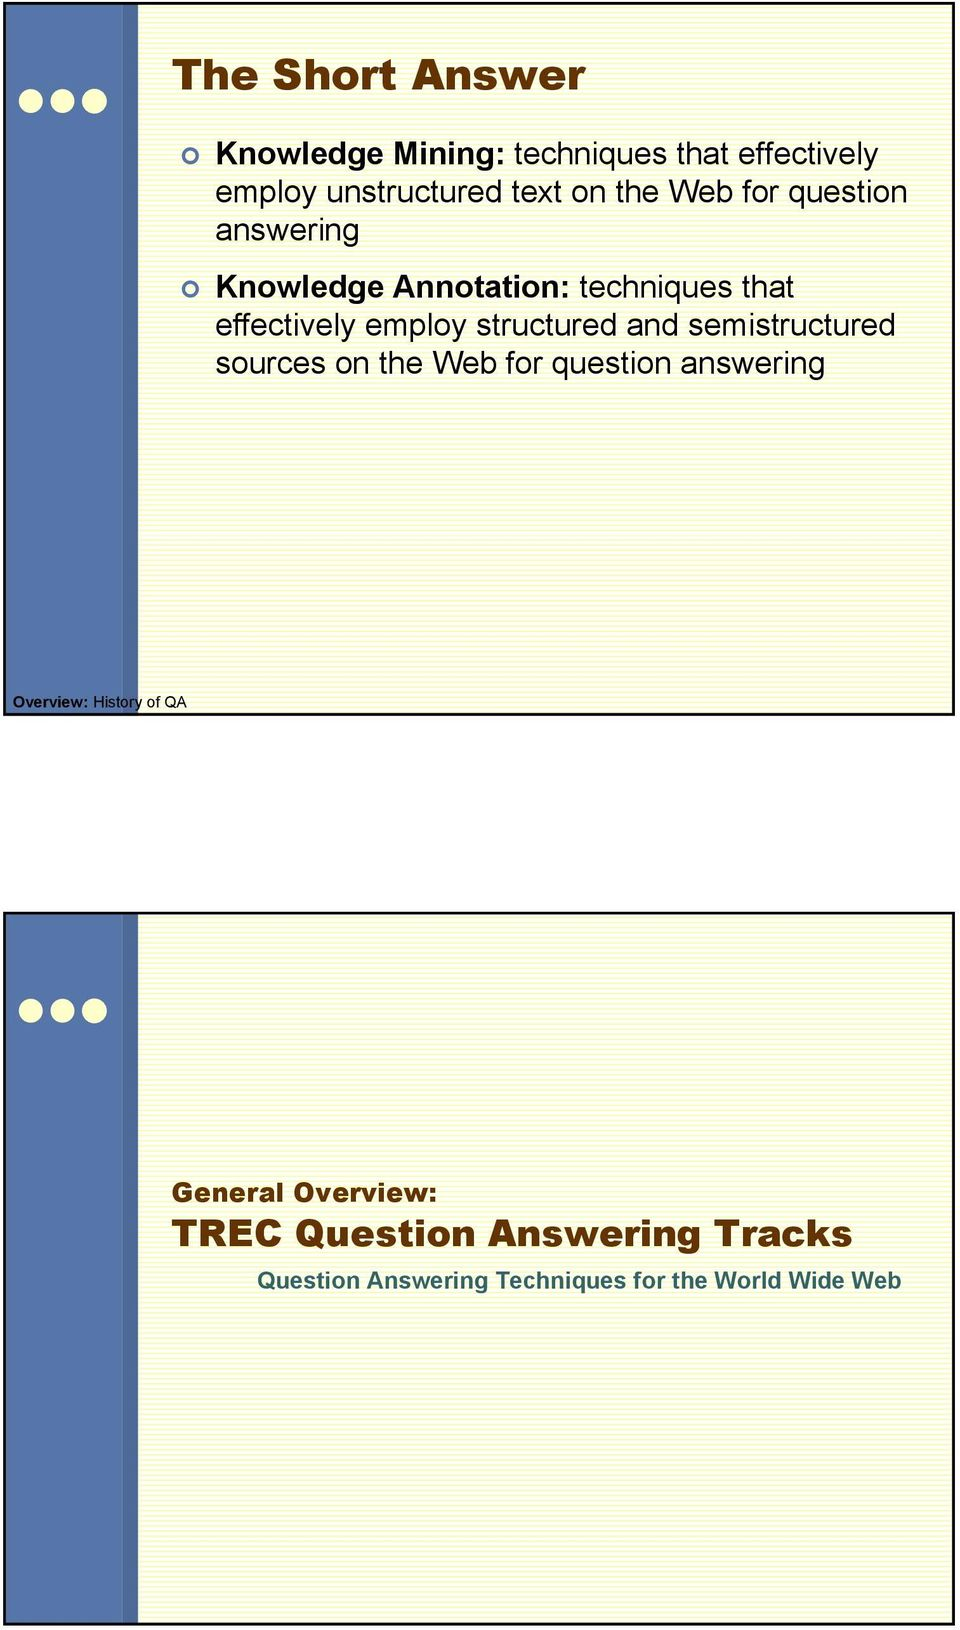 structured and semistructured sources on the Web for question answering Overview: History of